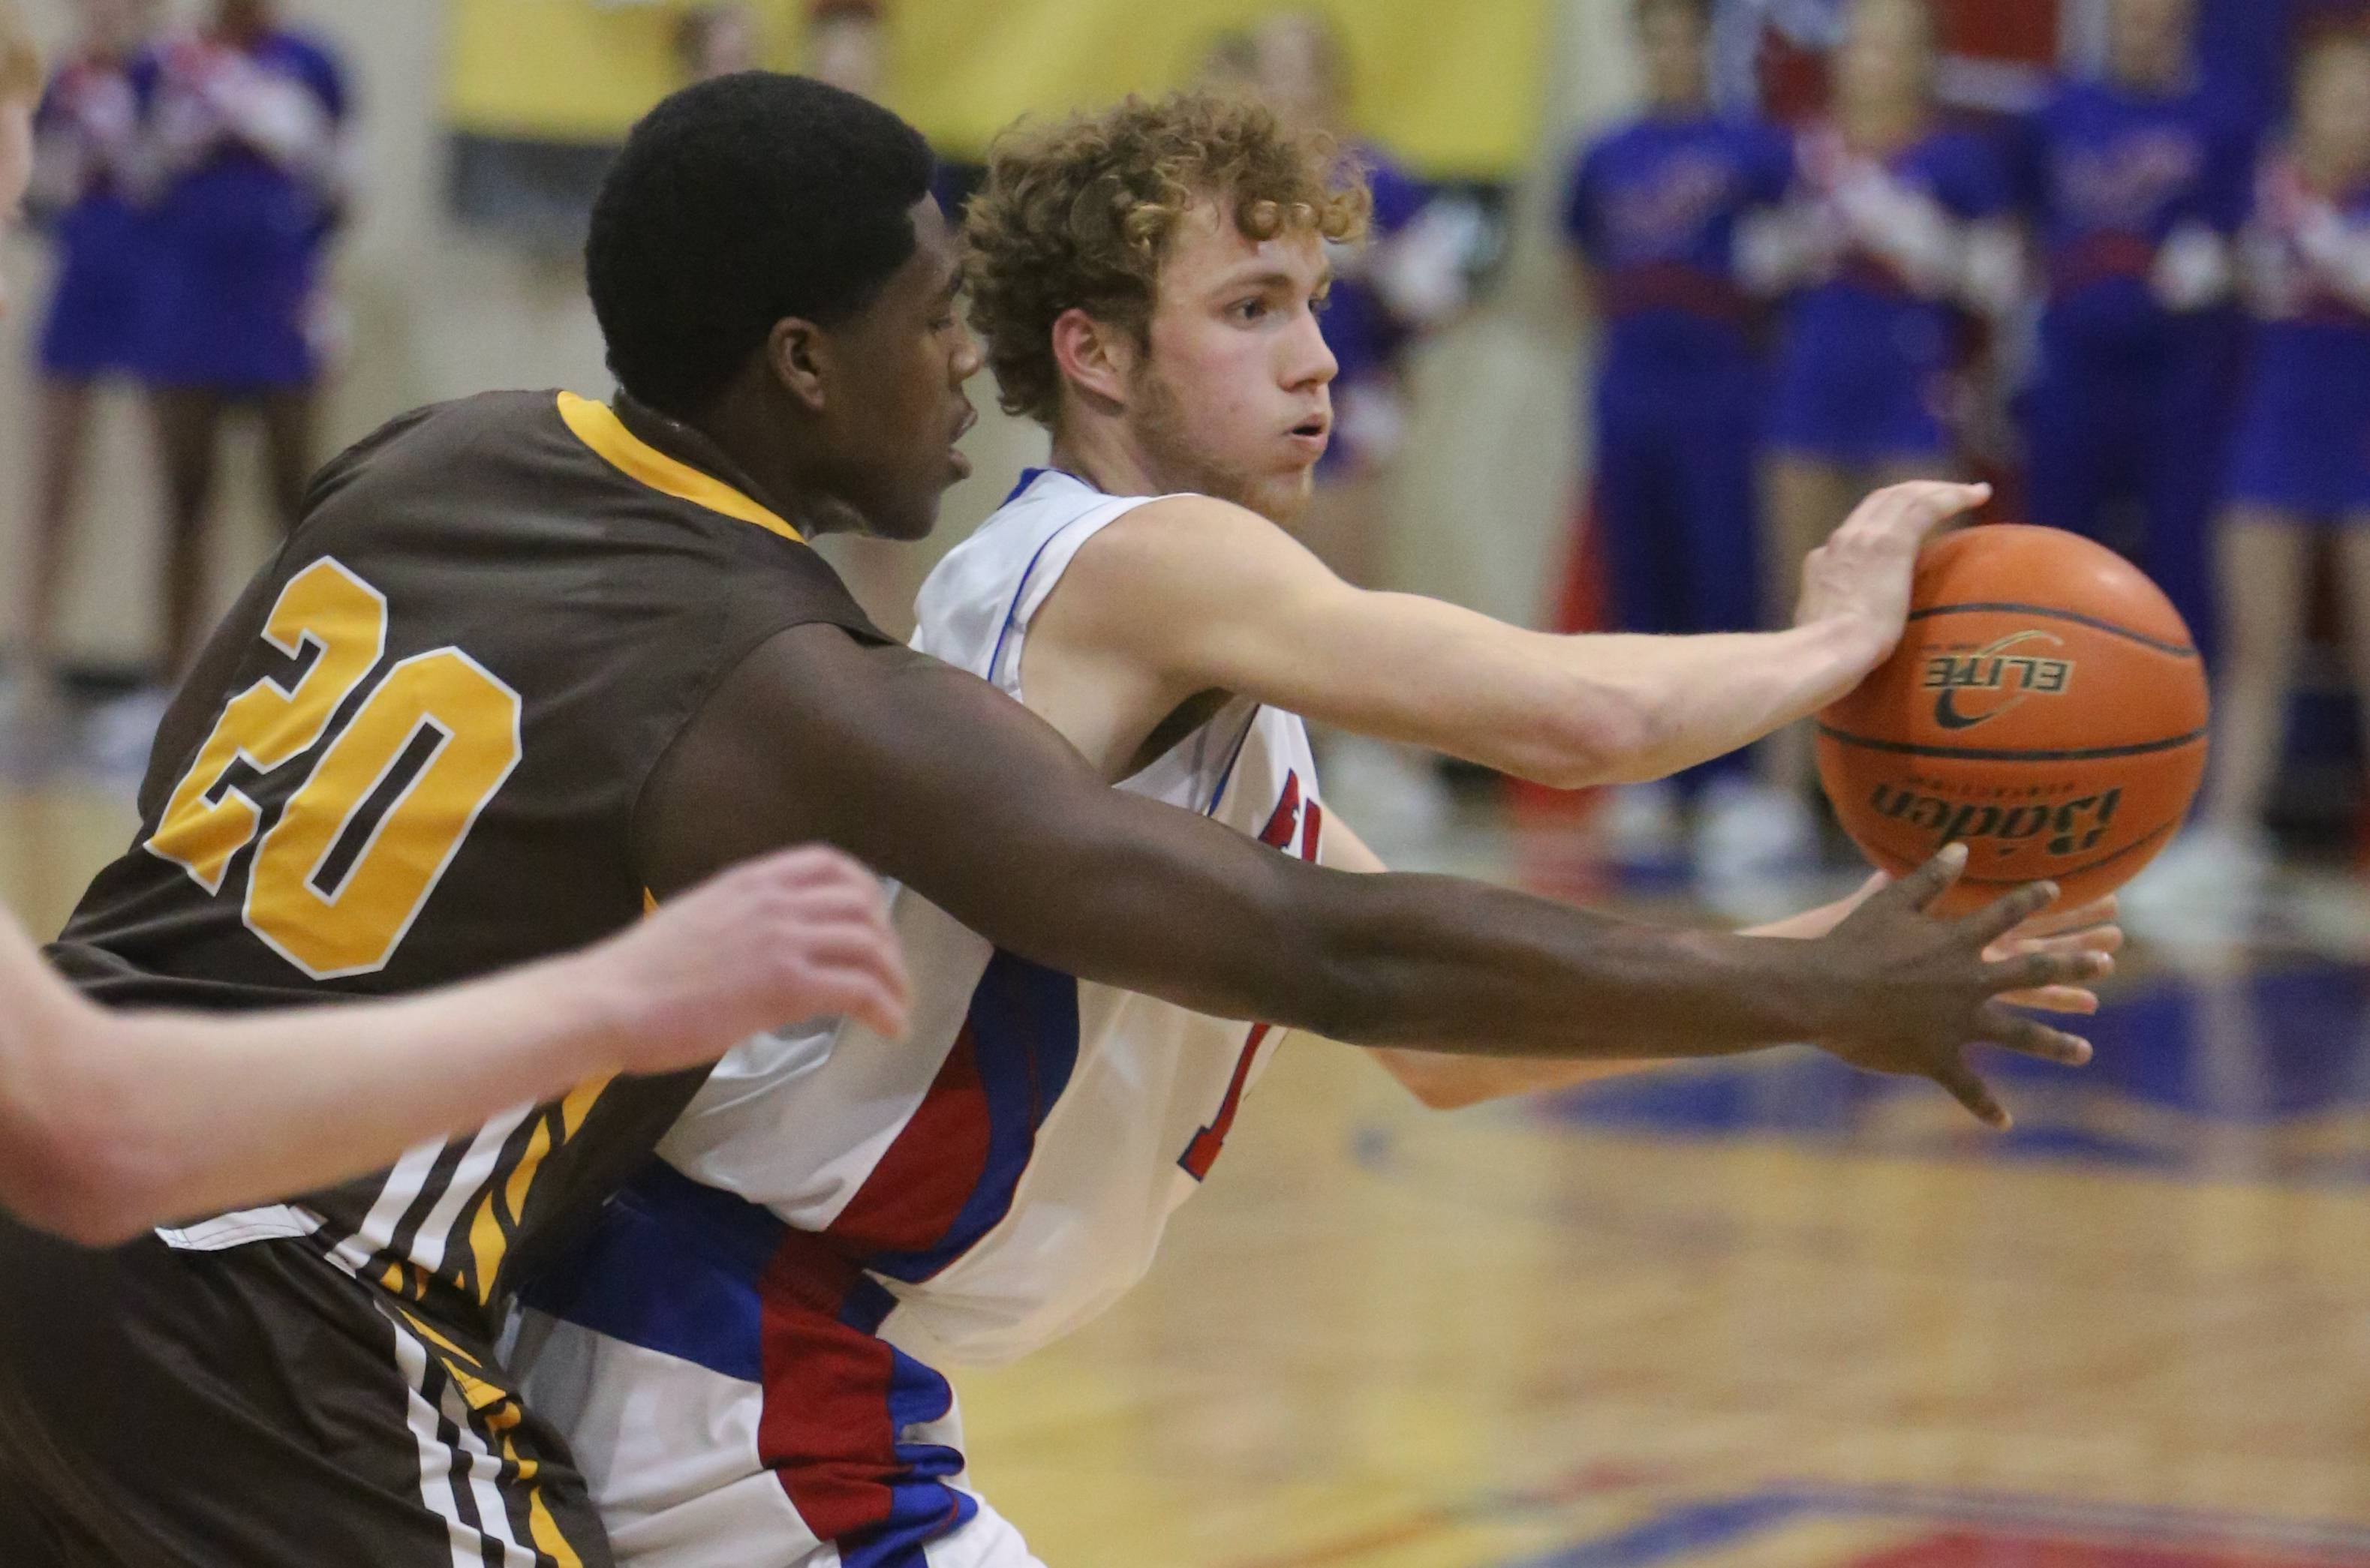 Images: Lakes vs. Carmel boys basketball